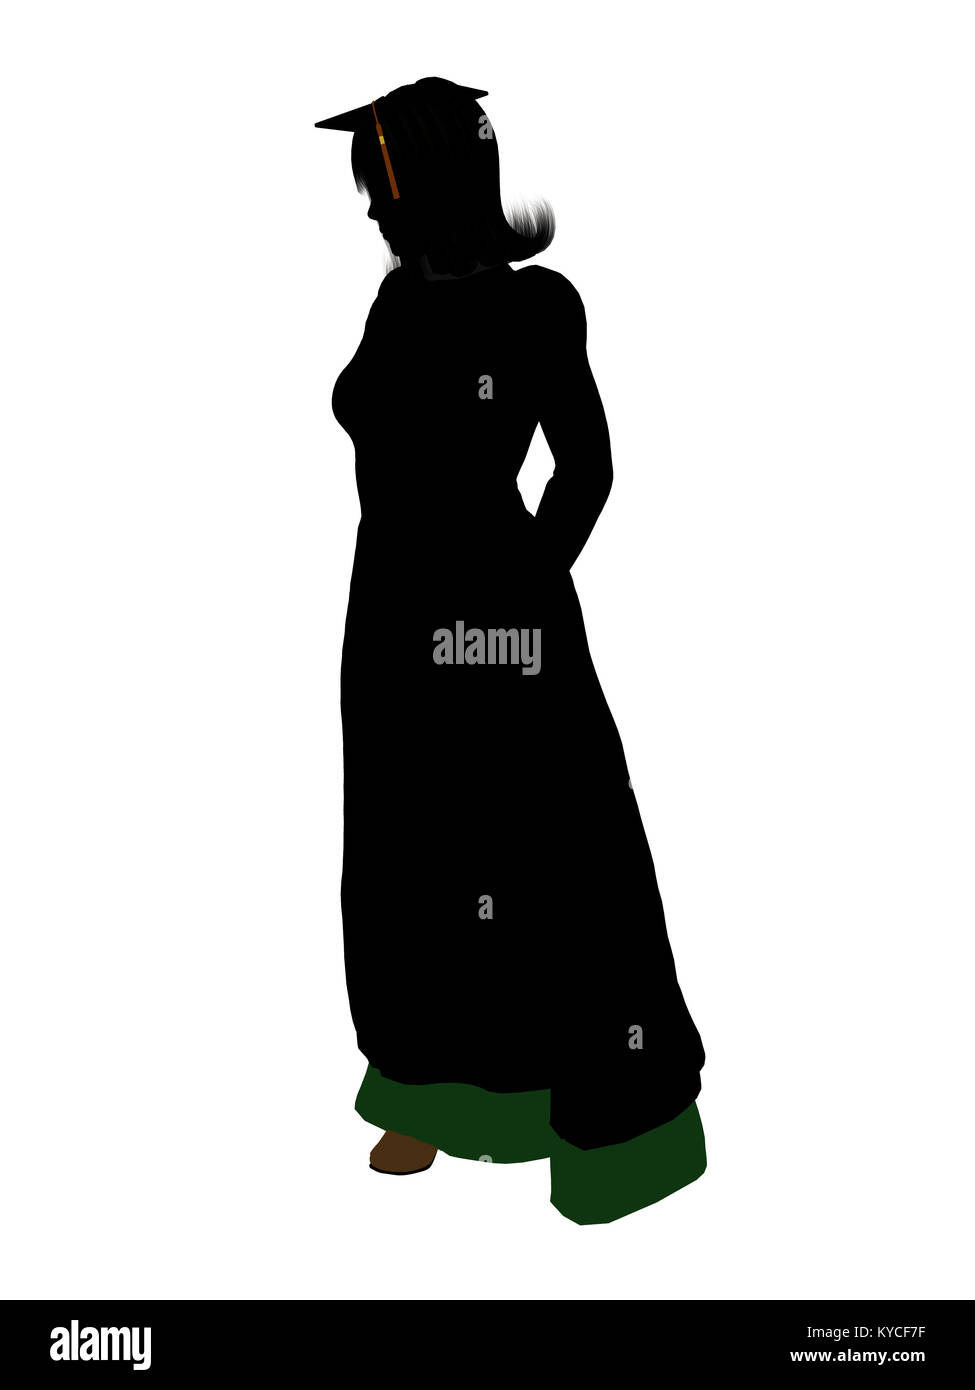 Graduate silhouette on a white background - Stock Image